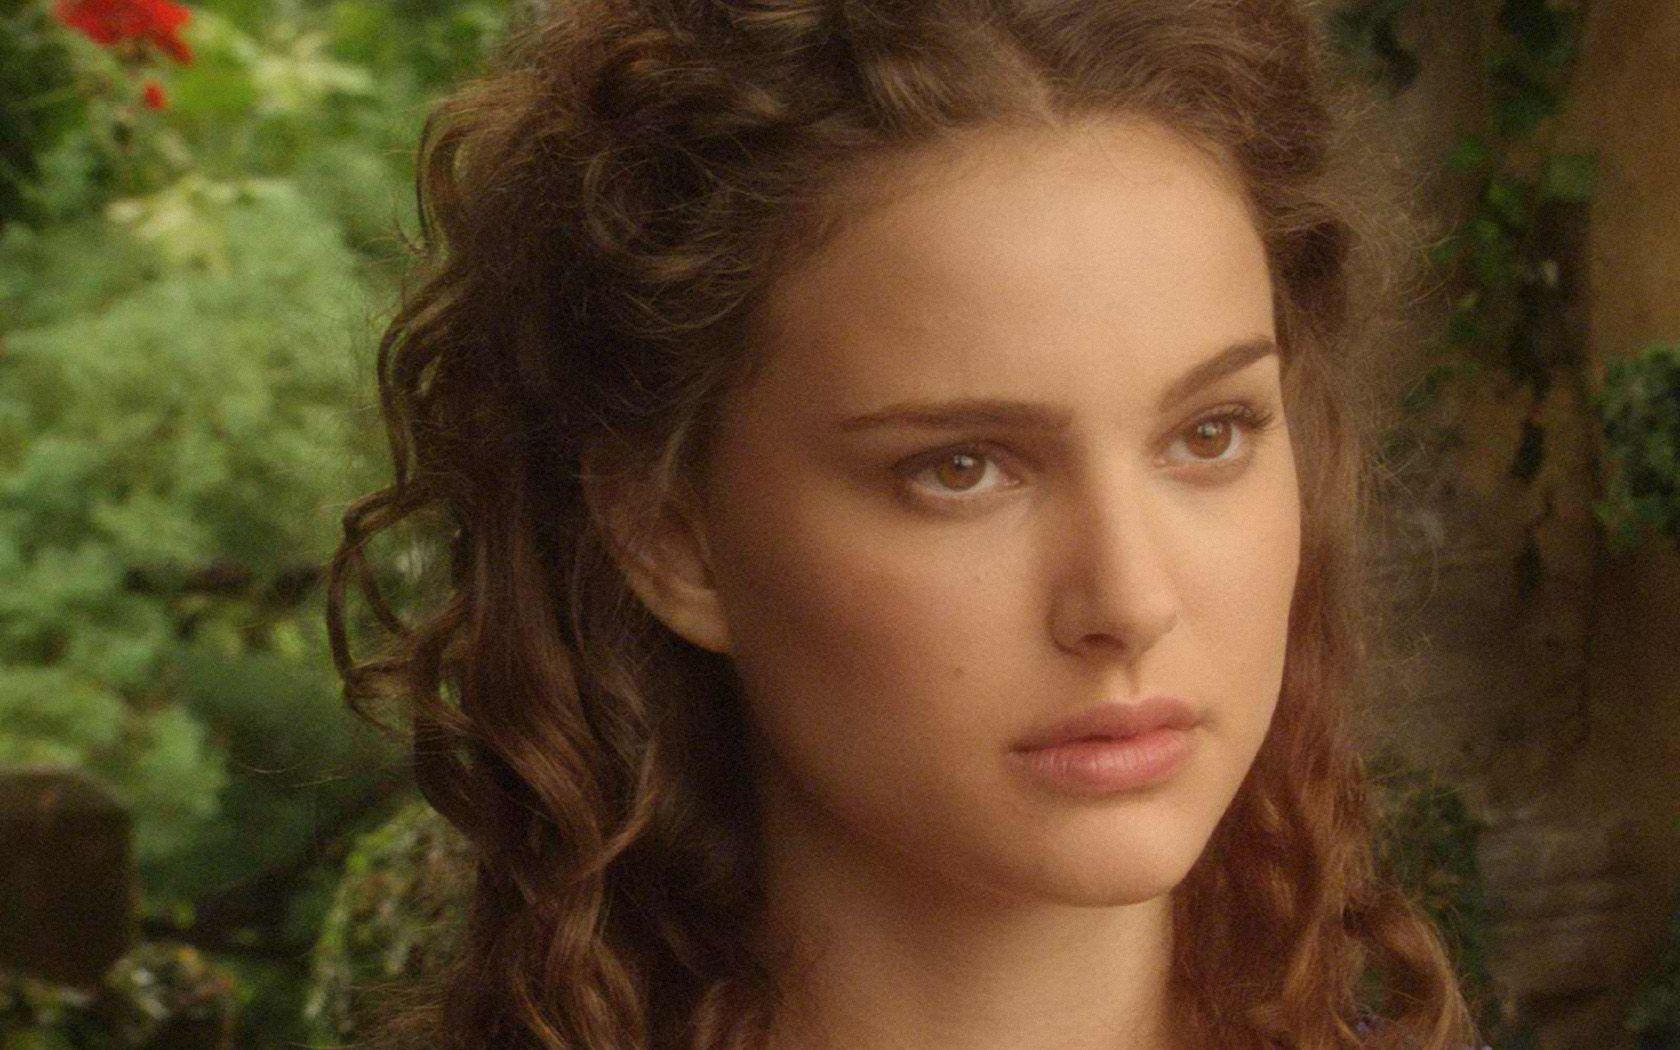 The Images of Natalie Portman 1680x1050 HD Wallpaper - 1680x1050 ...